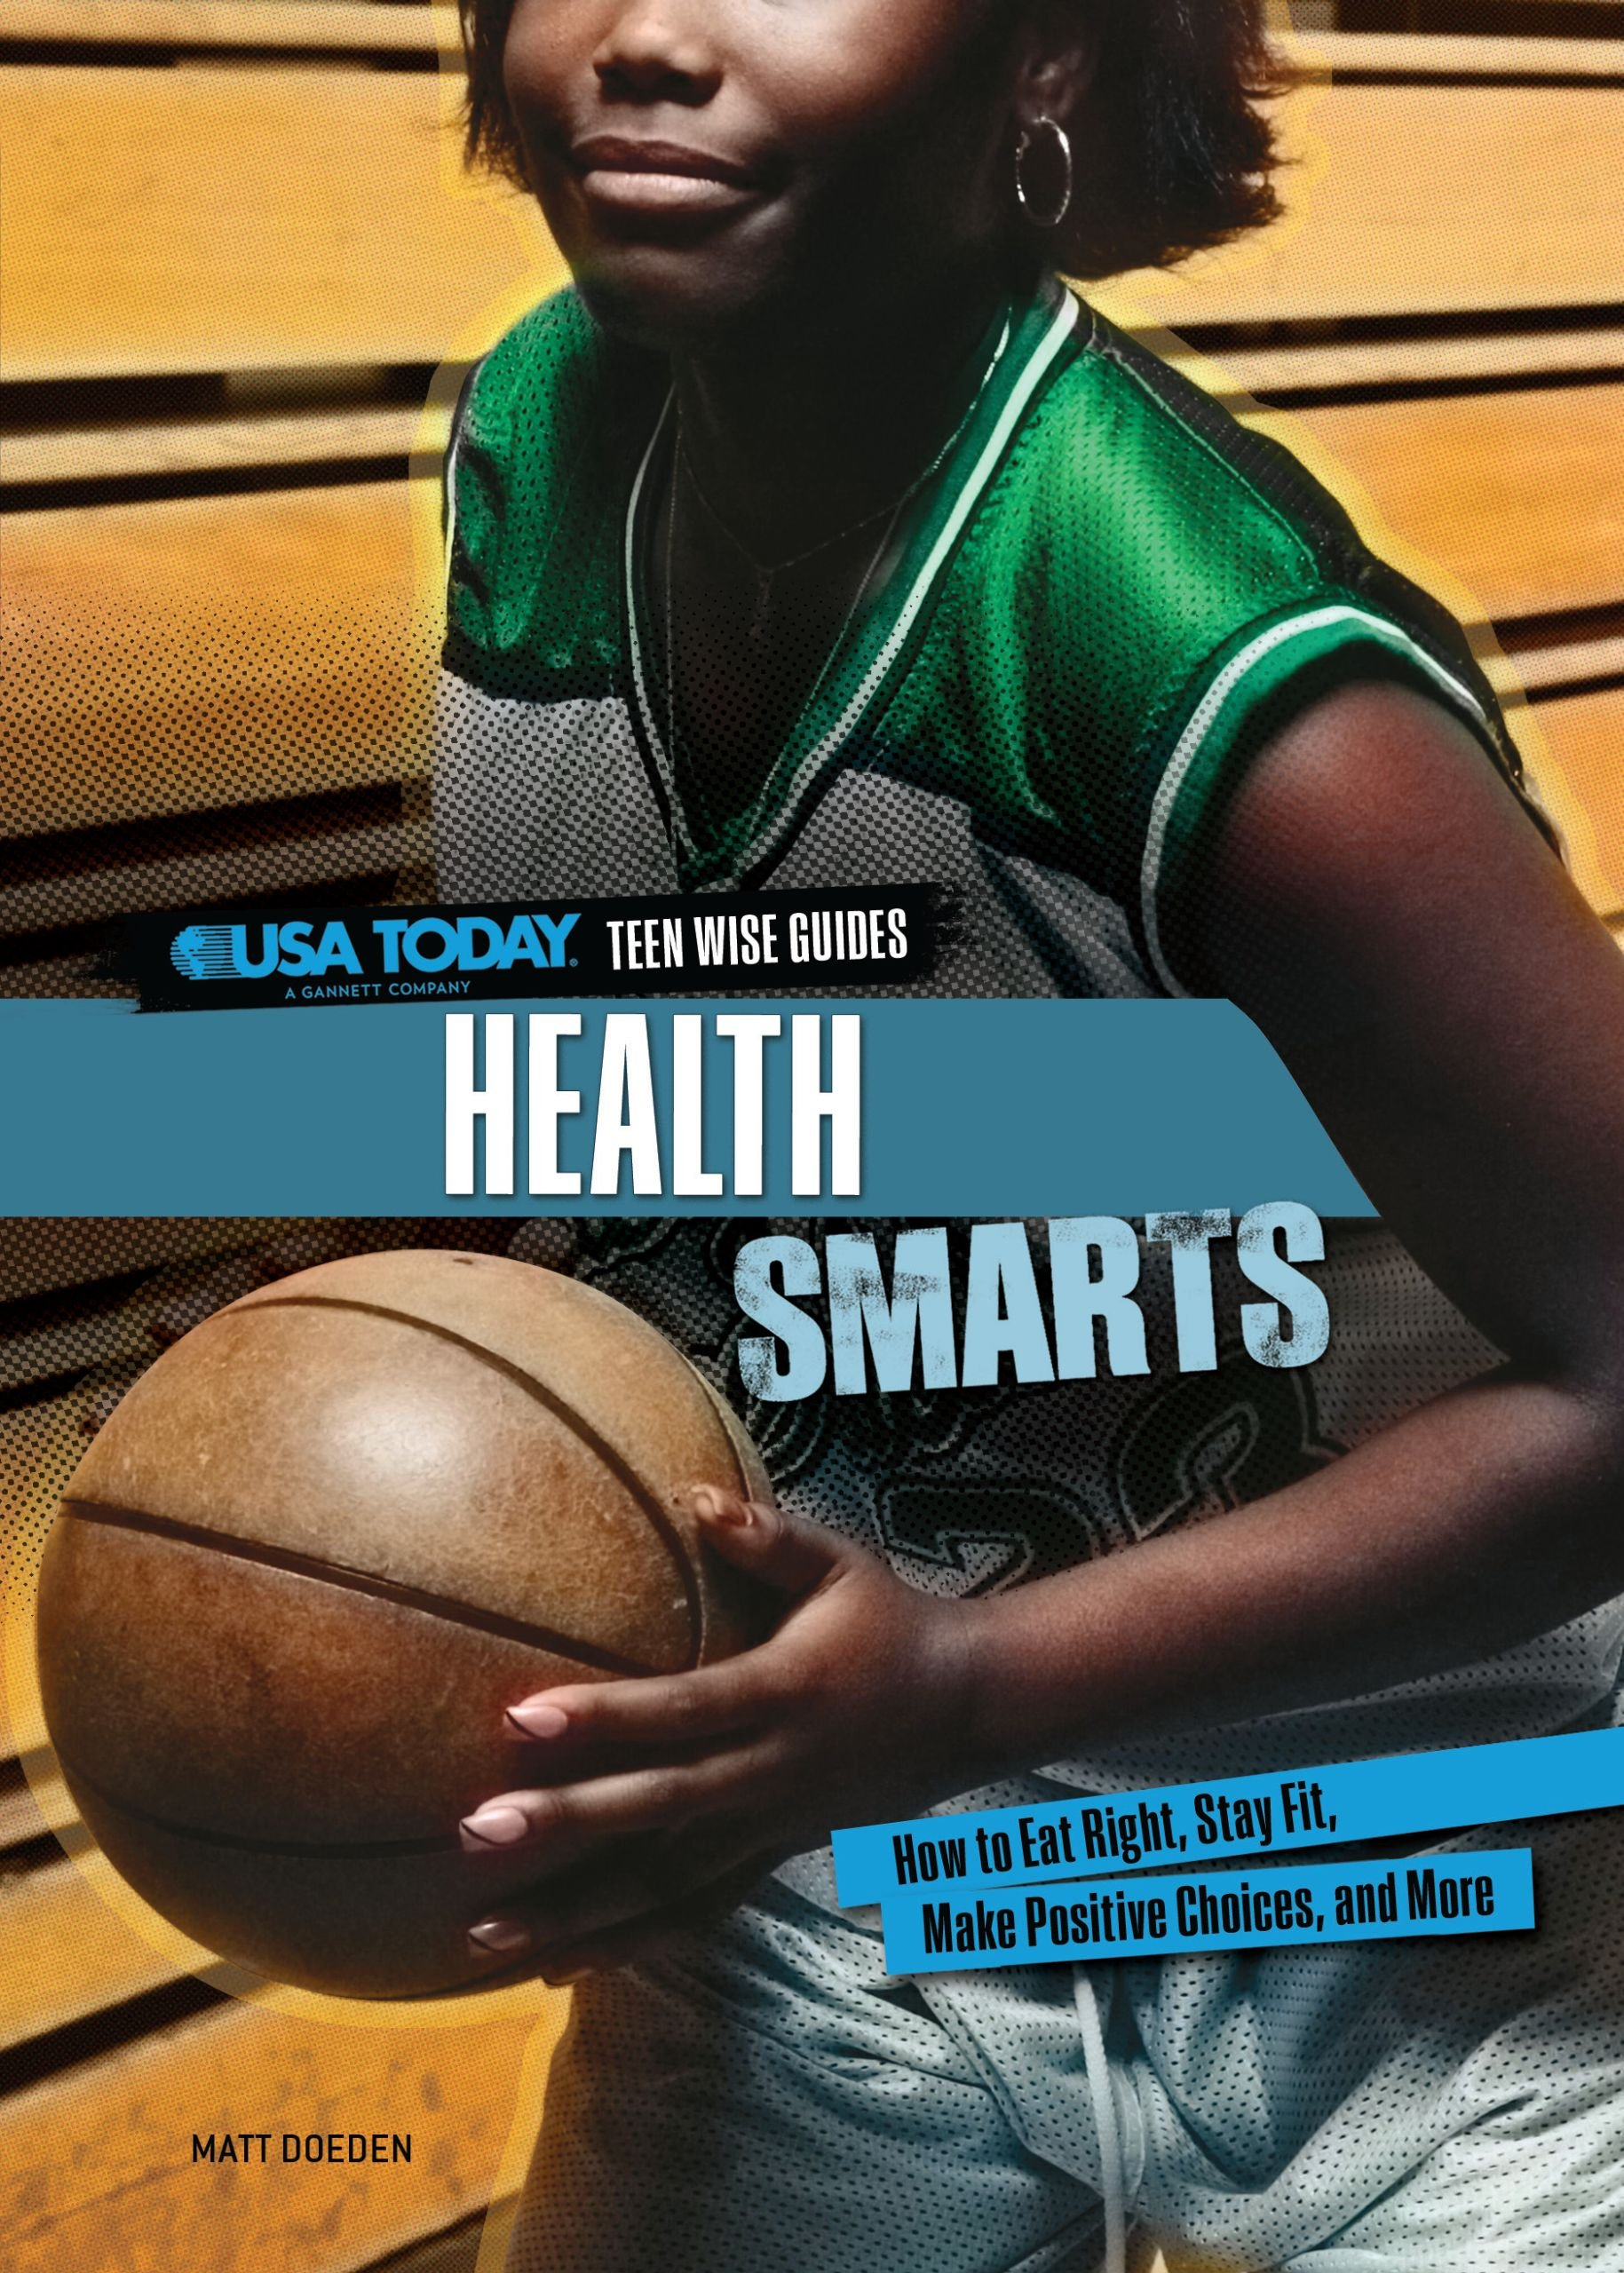 Health Smarts: How to Eat Right, Stay Fit, Make Positive Choices, and More (USA Today Teen Wise Guides: Lifestyle Choices) PDF